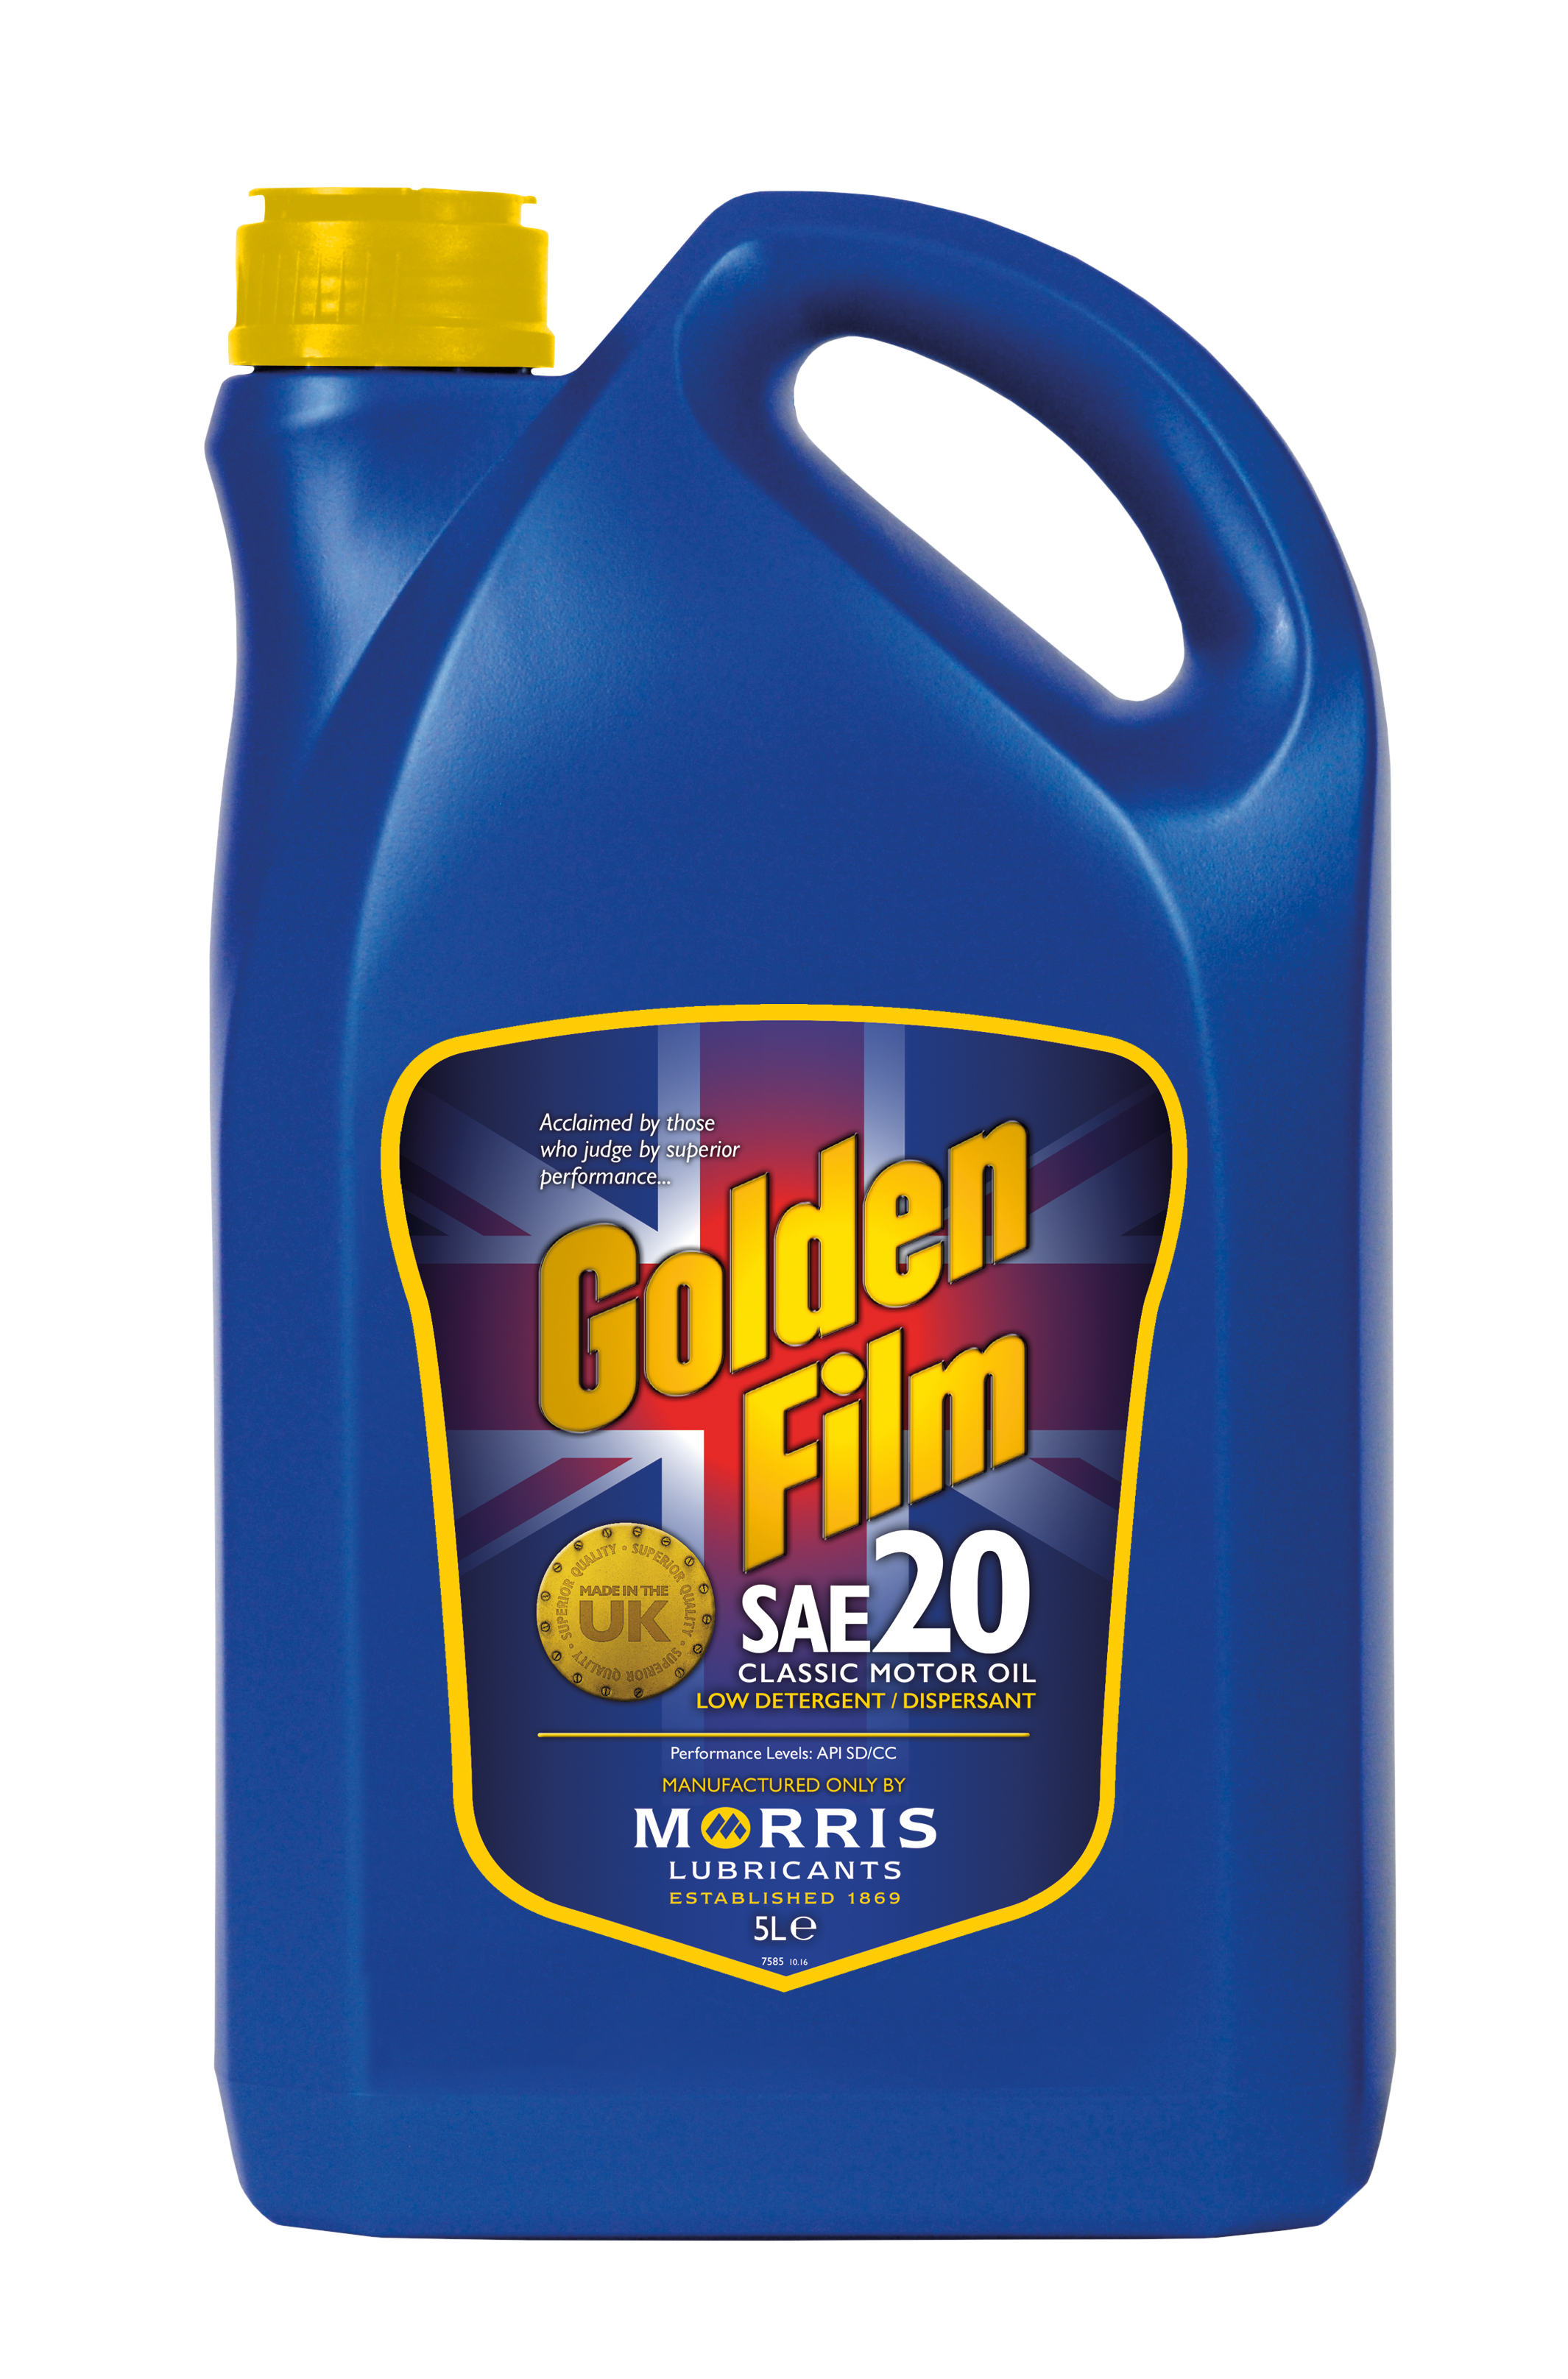 Morris Lubricants Golden Film Sae 20 Classic Motor Oil